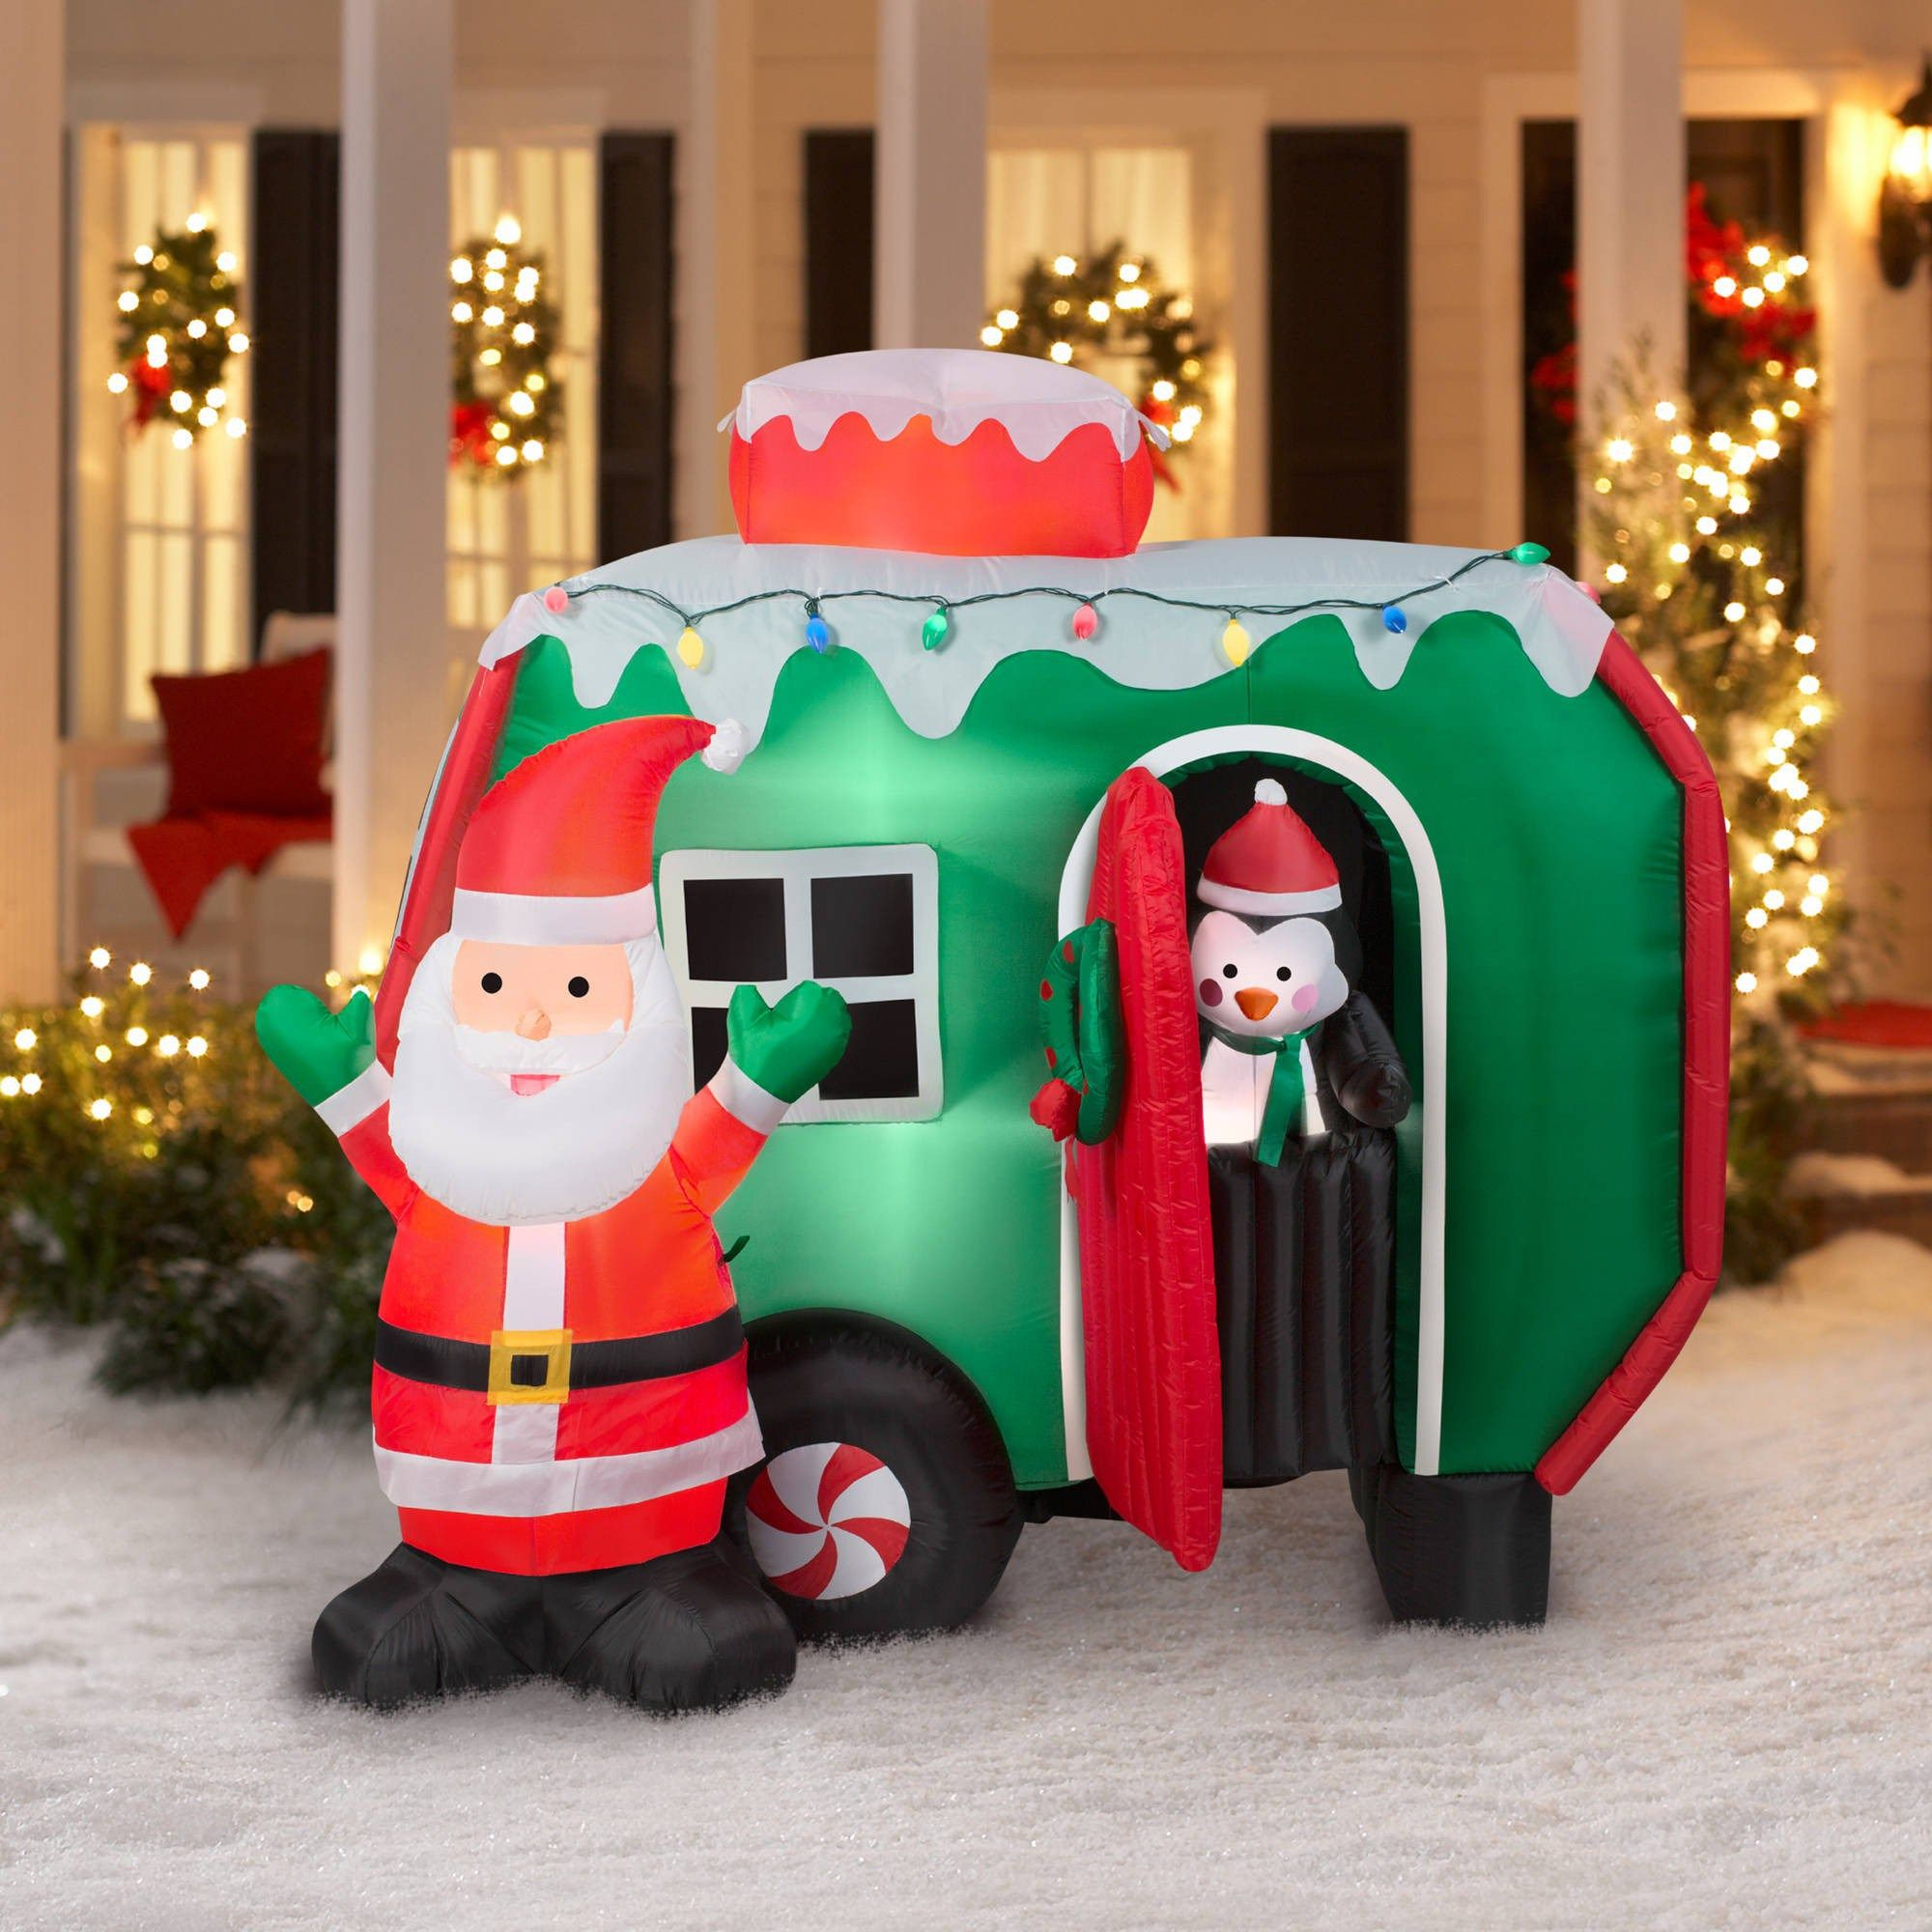 rv christmas decorations rv campers inspirational rv christmas decorations rv campers redneck rv trailer